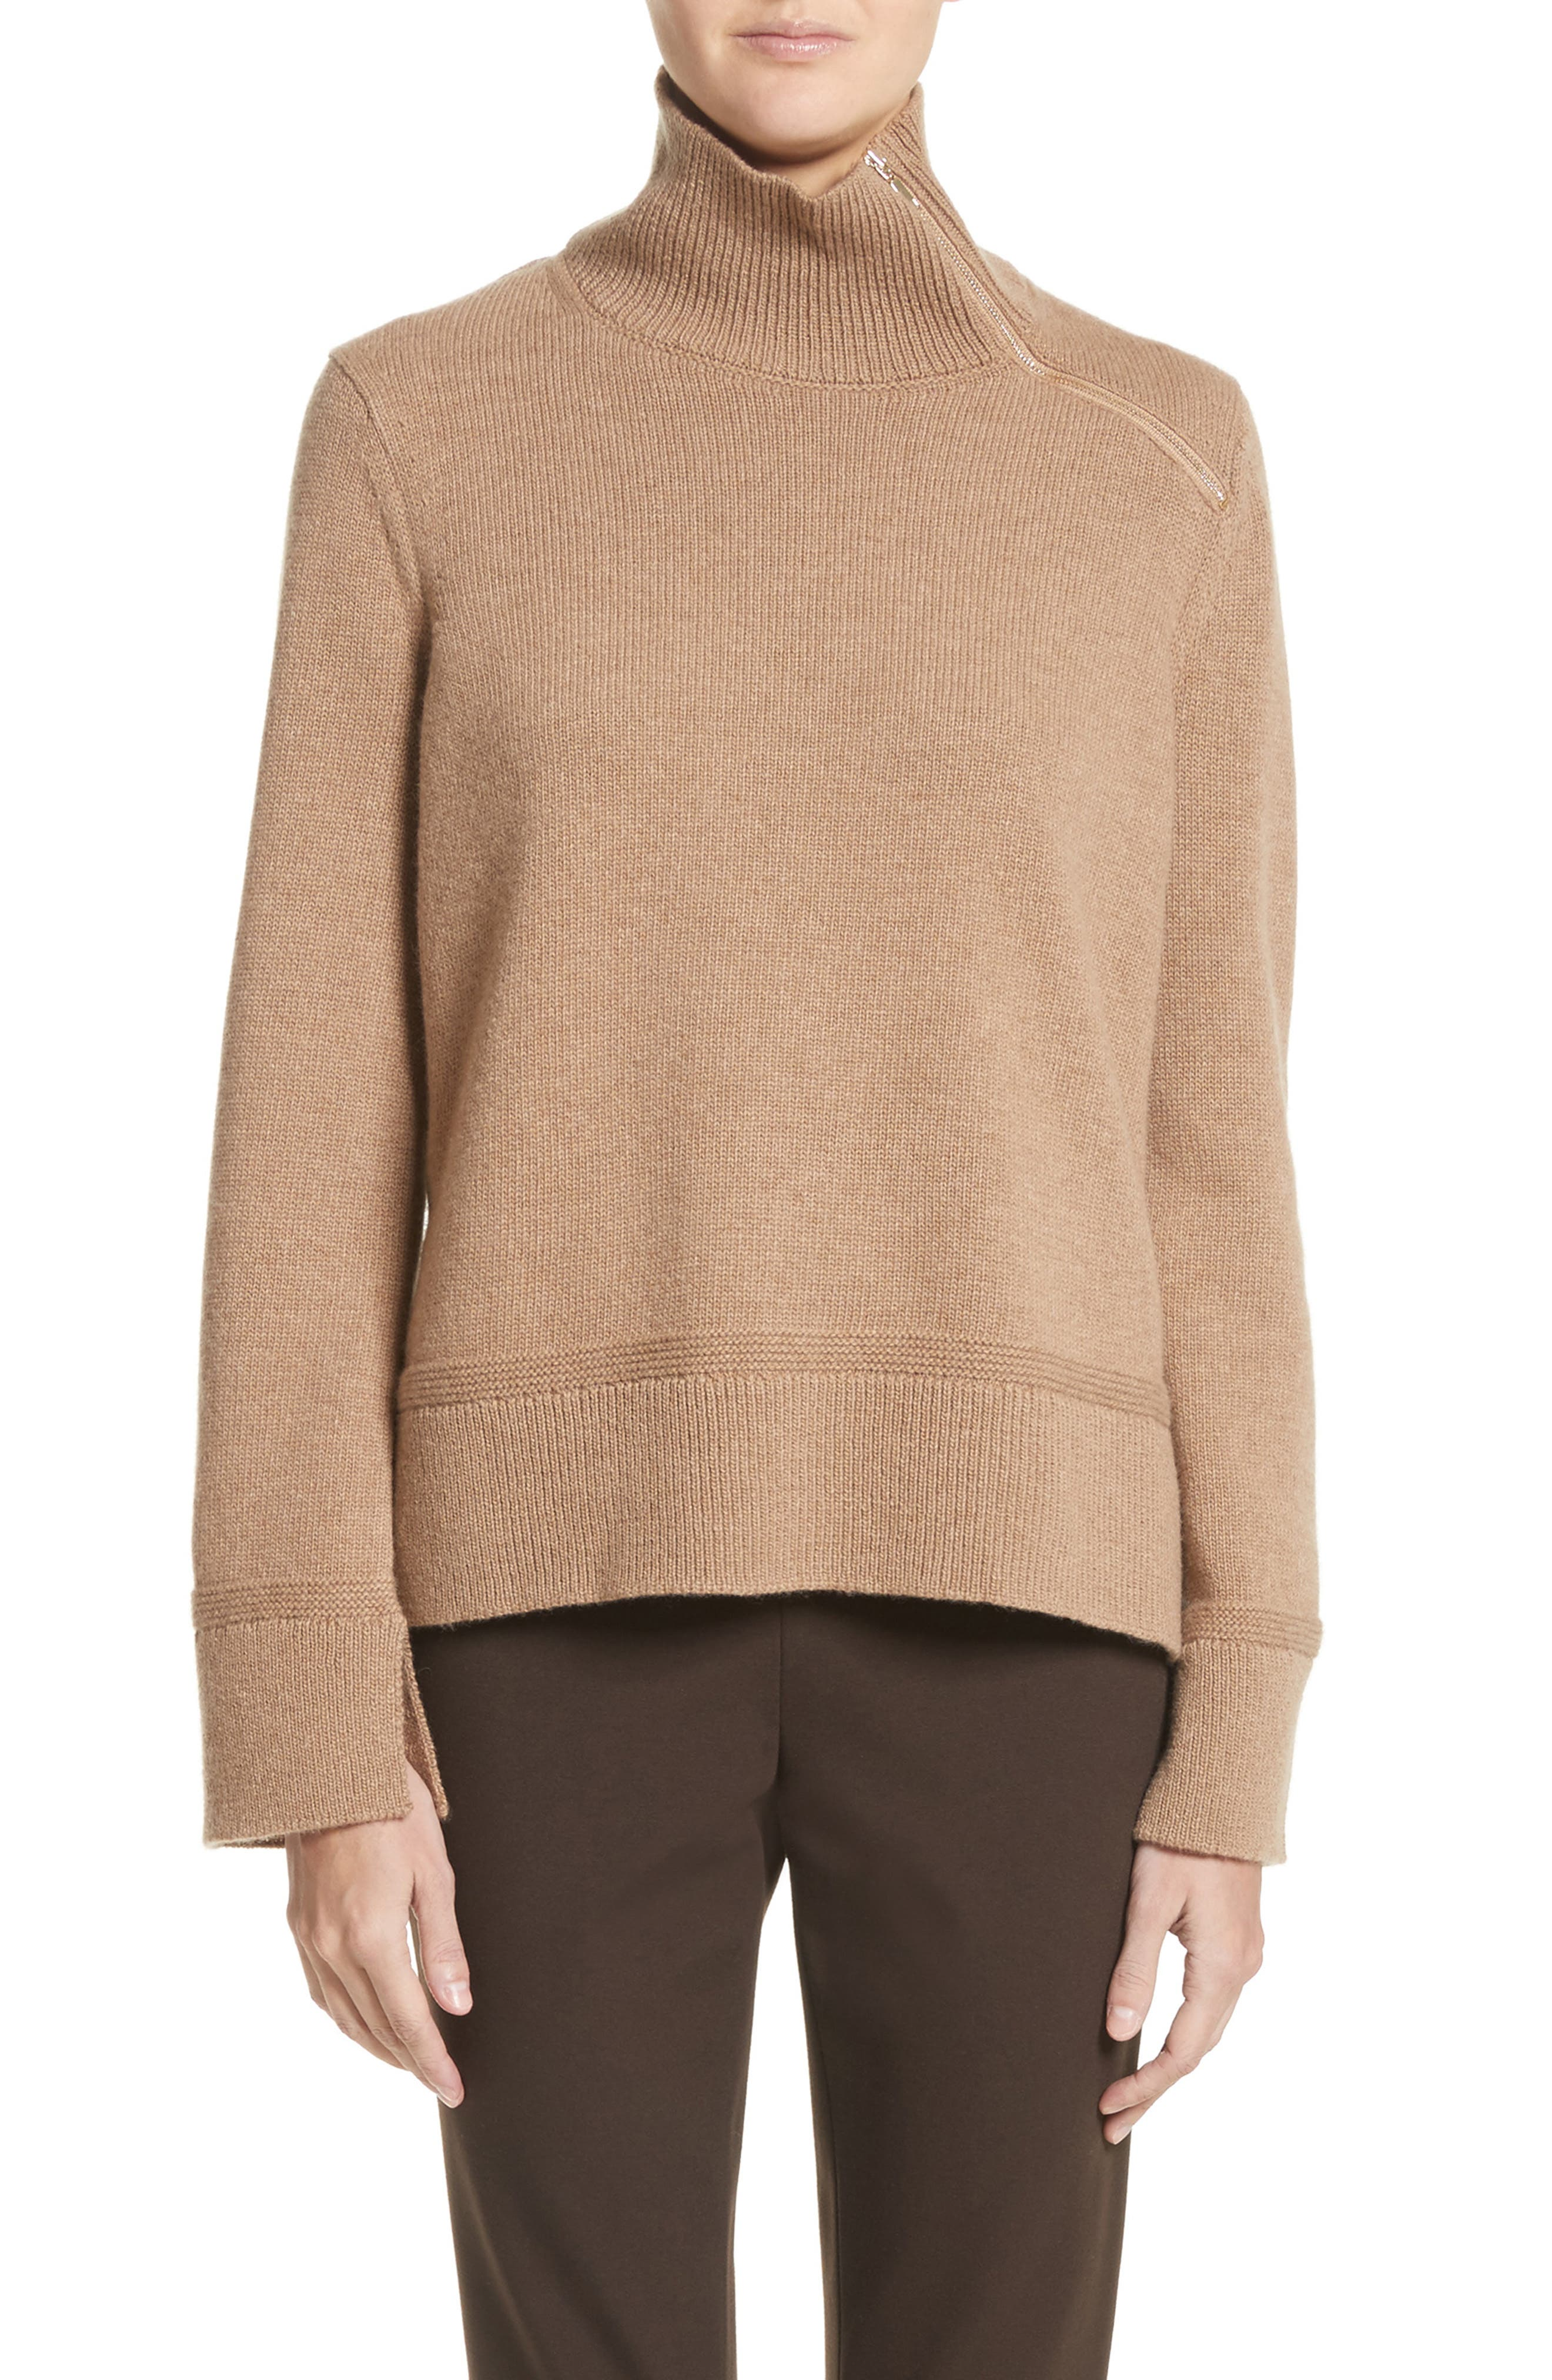 Alternate Image 1 Selected - Lafayette 148 New York Suede Zip Detail Wool & Cashmere Crop Sweater